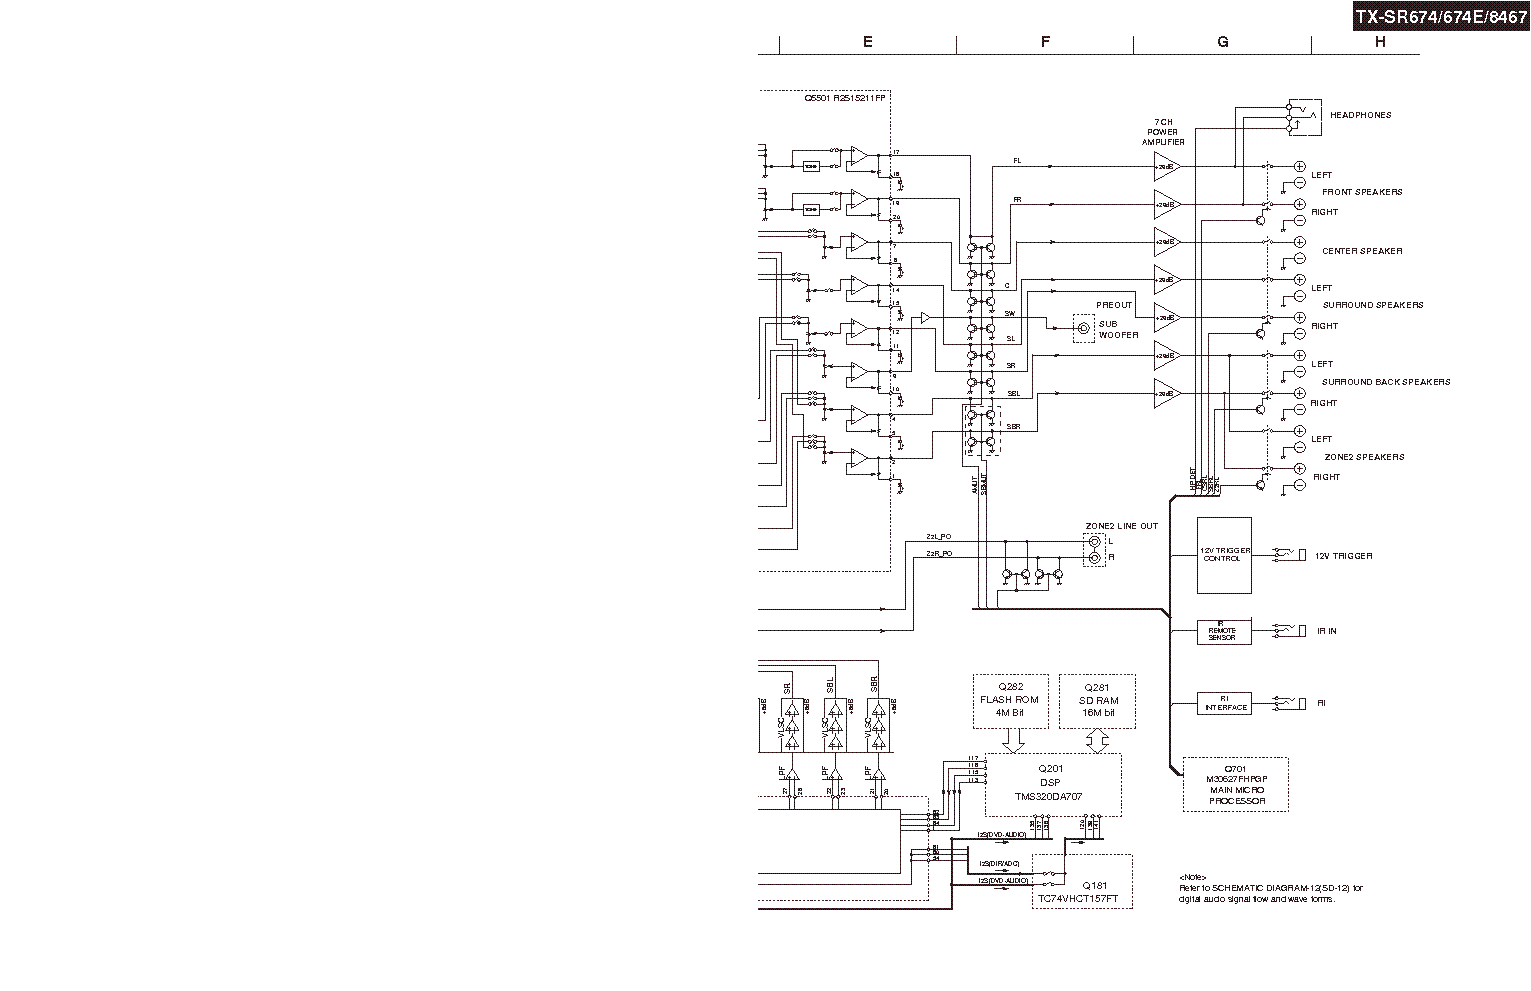 ONKYO TX-SR674 SCH Service Manual download, schematics